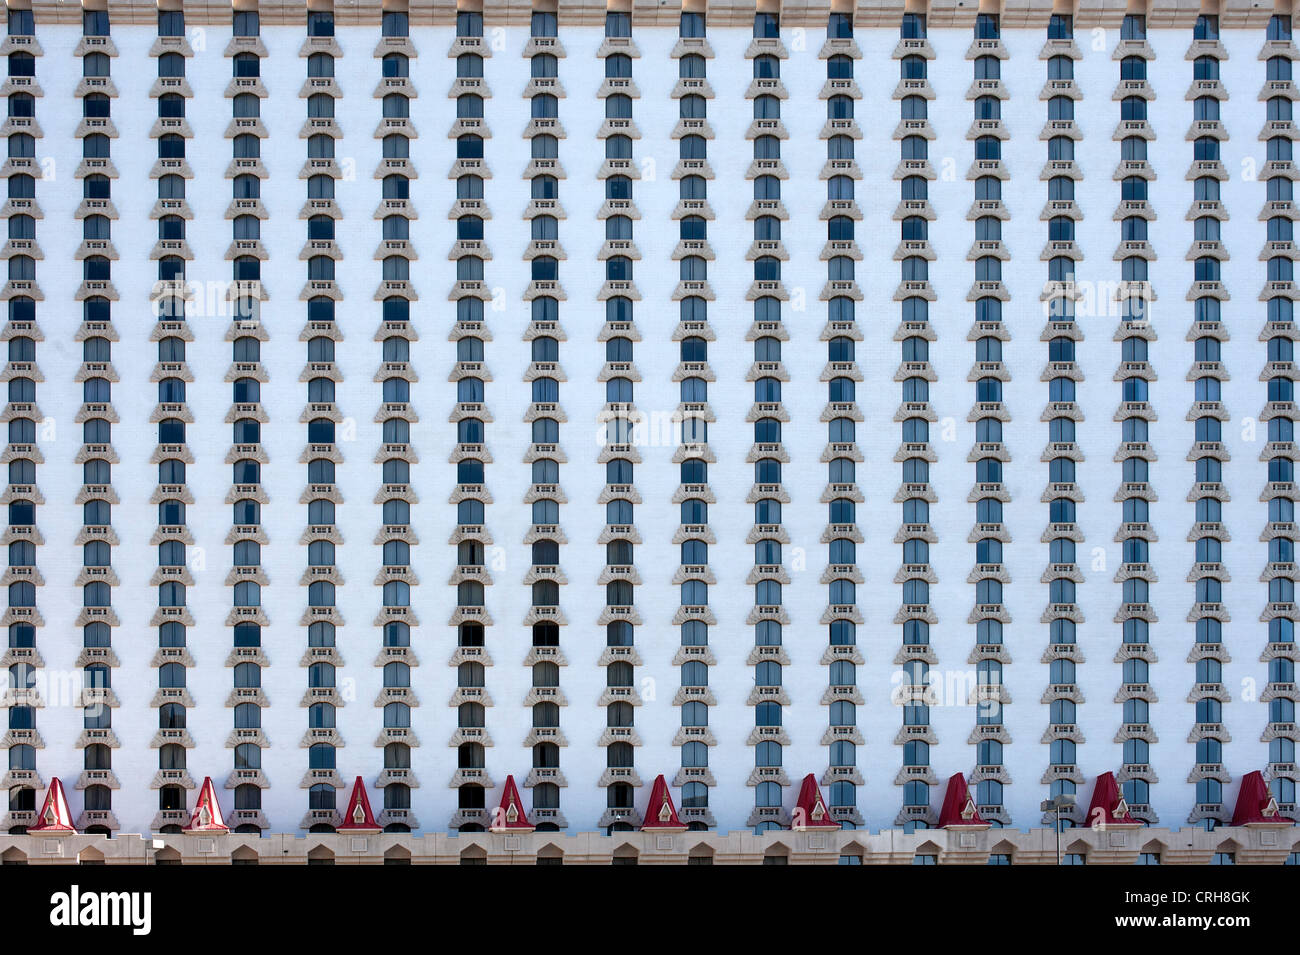 Shuttered windows on the Excalibur Resort Hotel in Las Vegas, Nevada, United States of America, USA Stock Photo